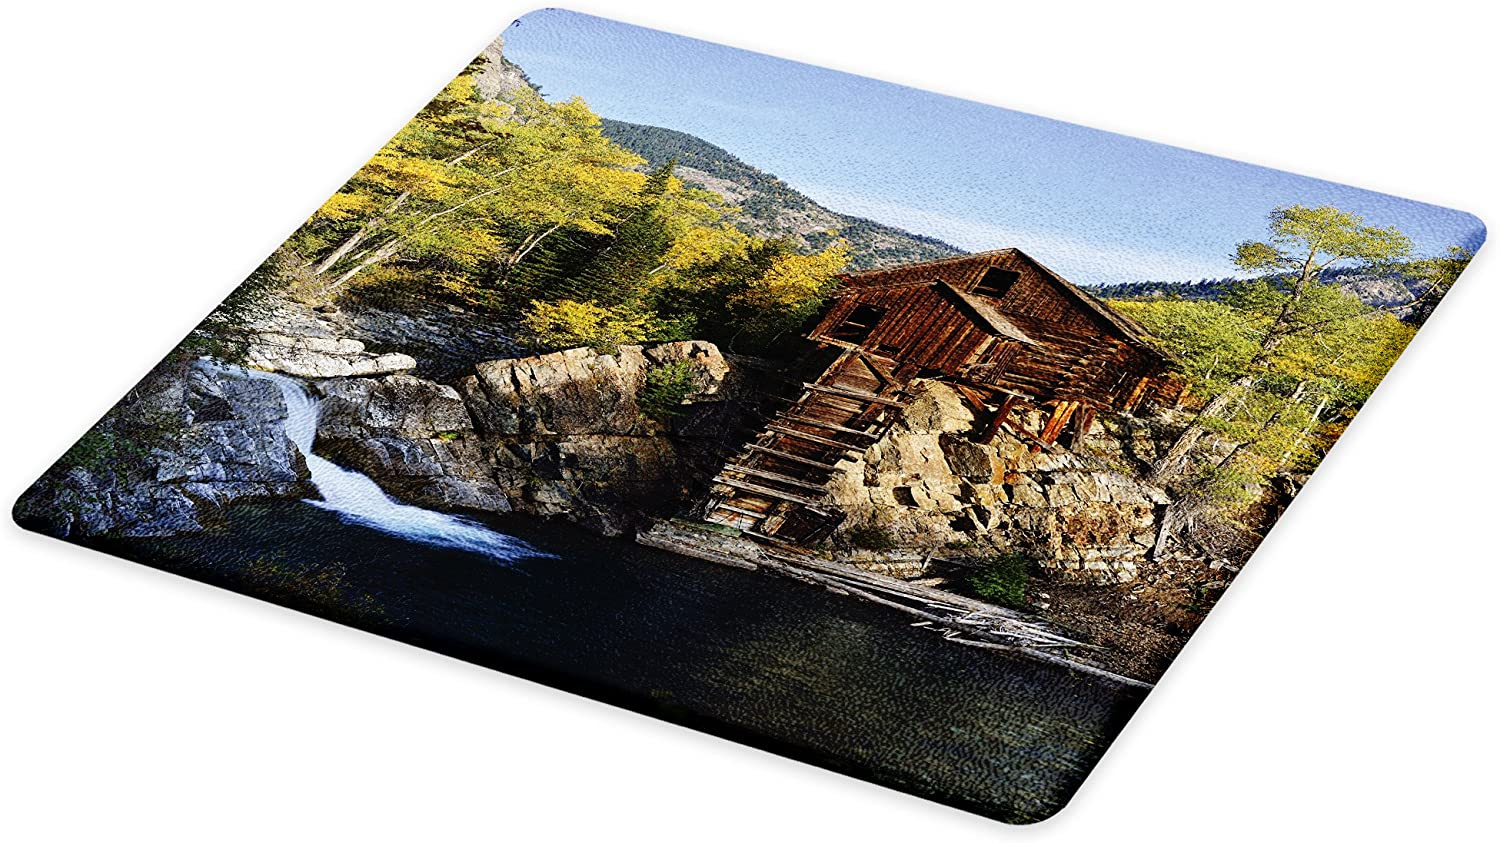 Lunarable Landscape Cutting Board, Secluded Wooden Cabin in Woods River Waterfall Forest Mill Mountain Pine Trees, Decorative Tempered Glass Cutting and Serving Board, Large Size, Multicolor